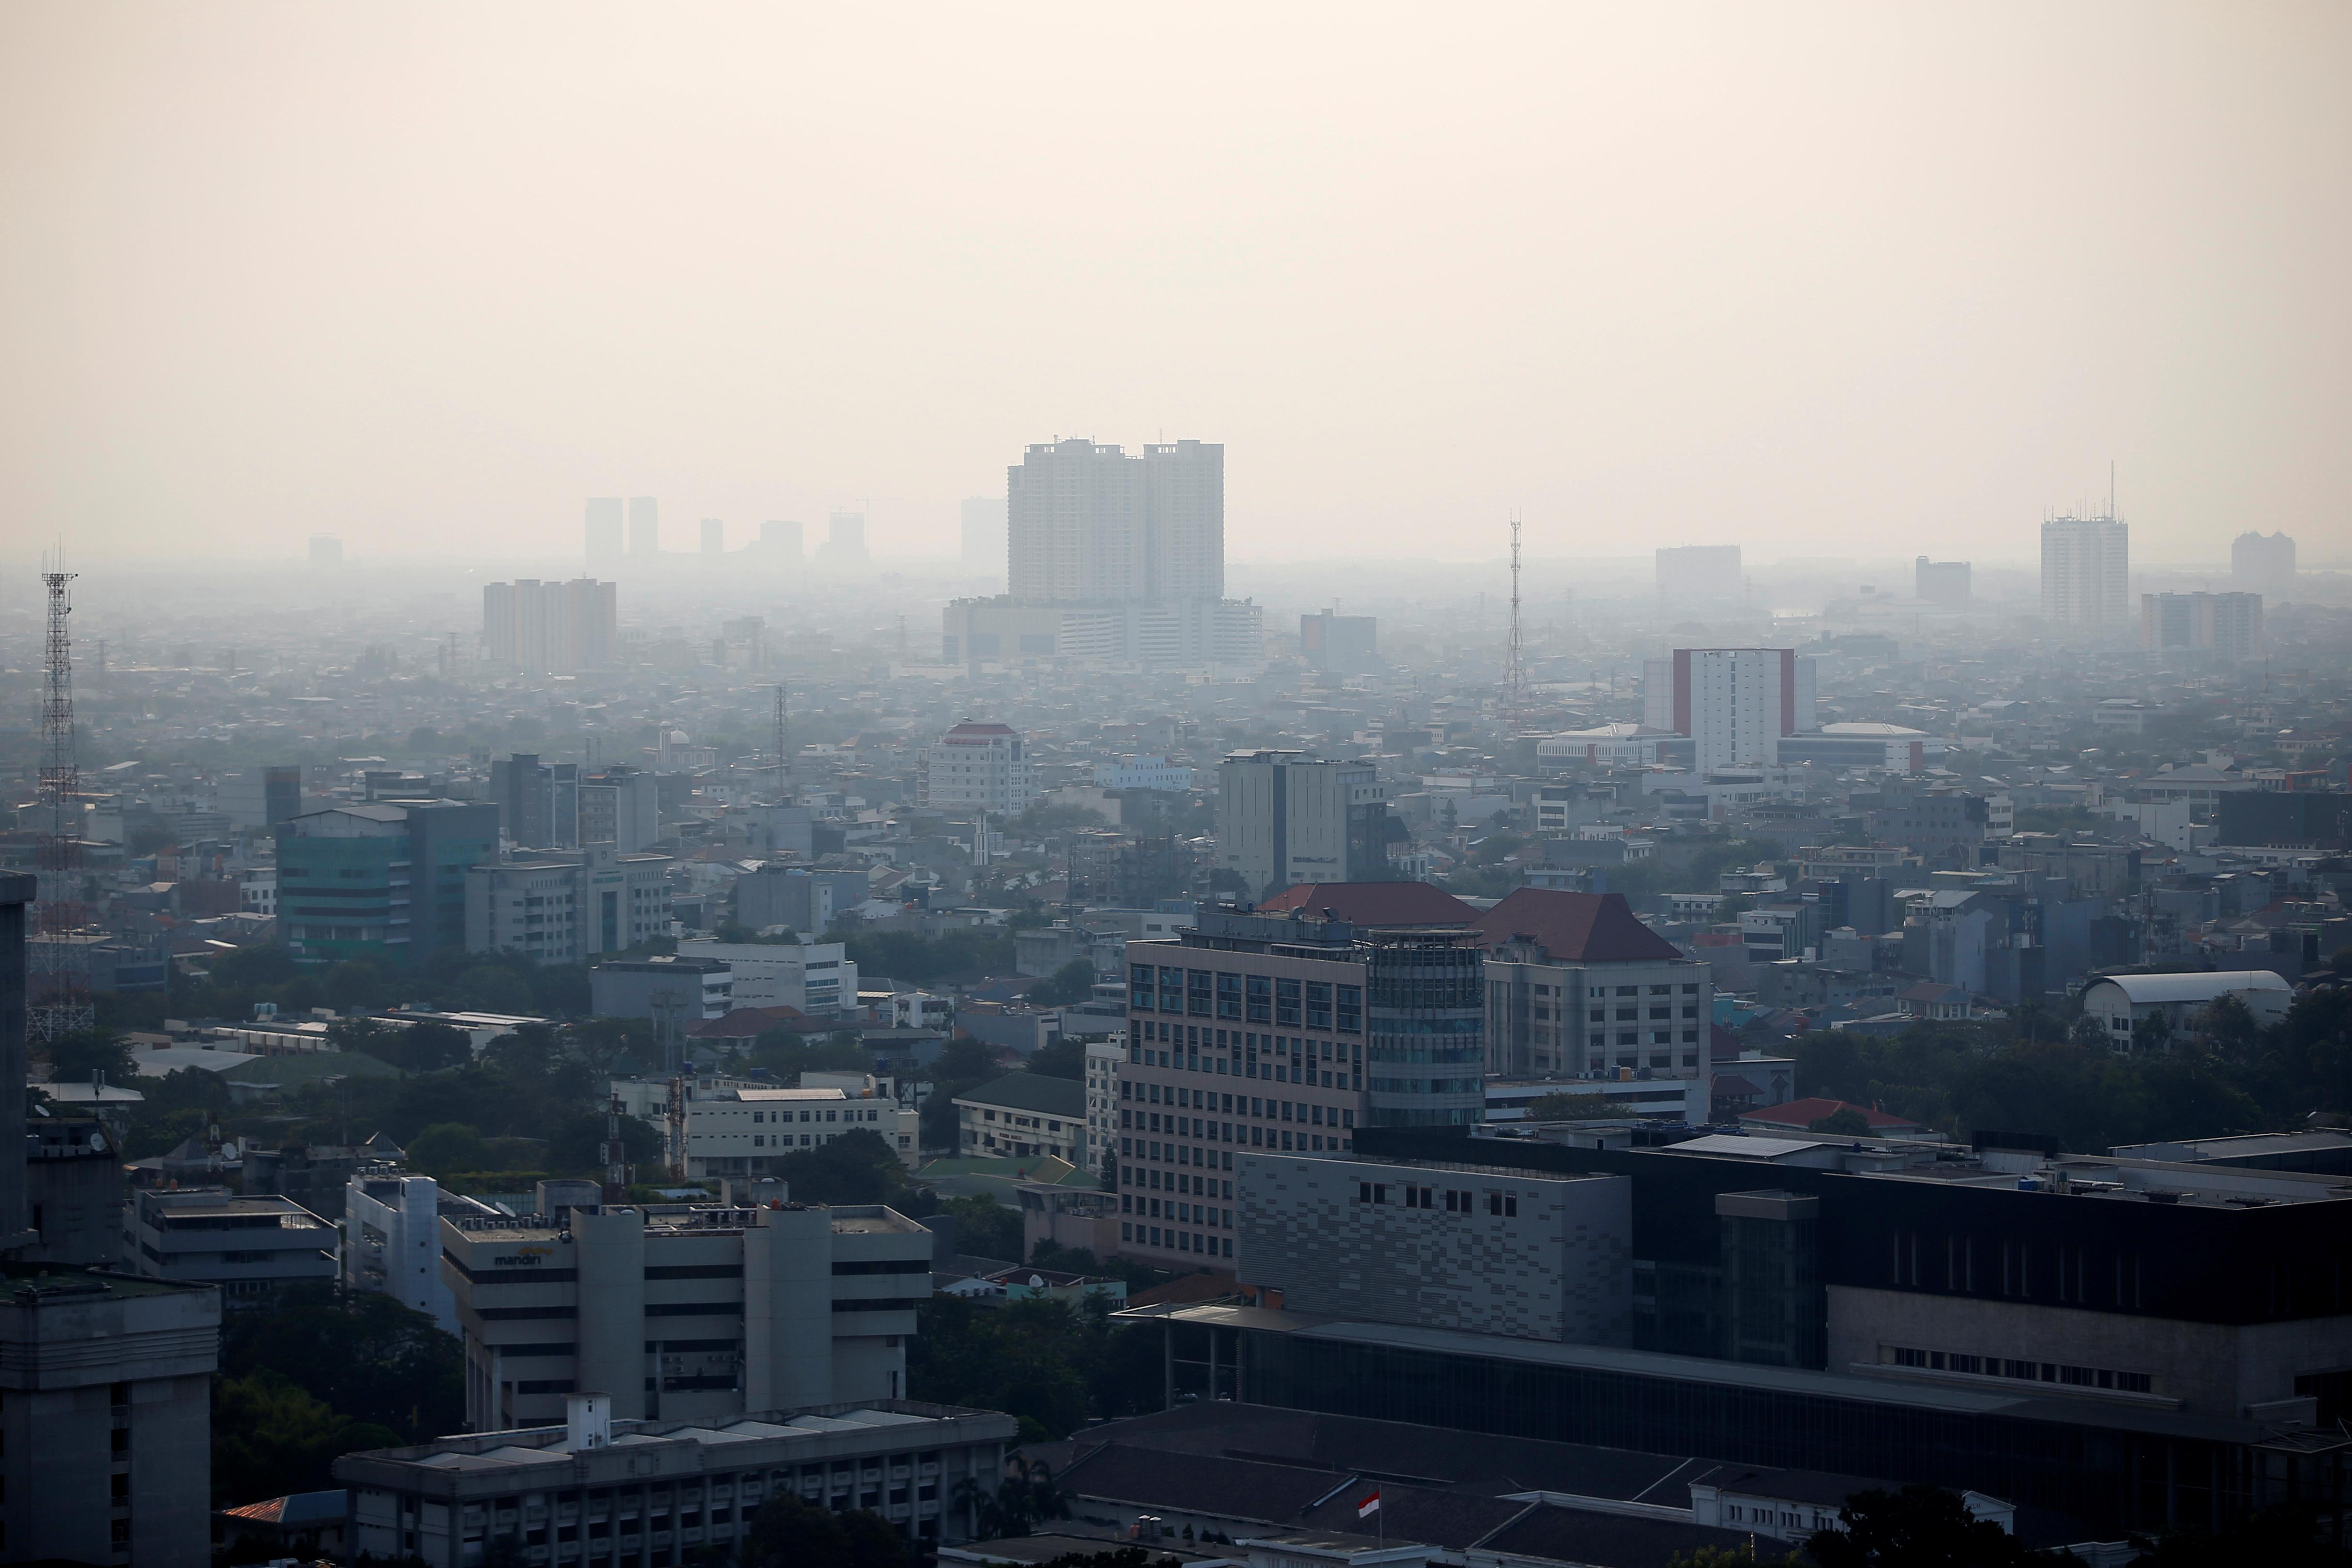 Five heirs from wealthy Asia families focus on pollution